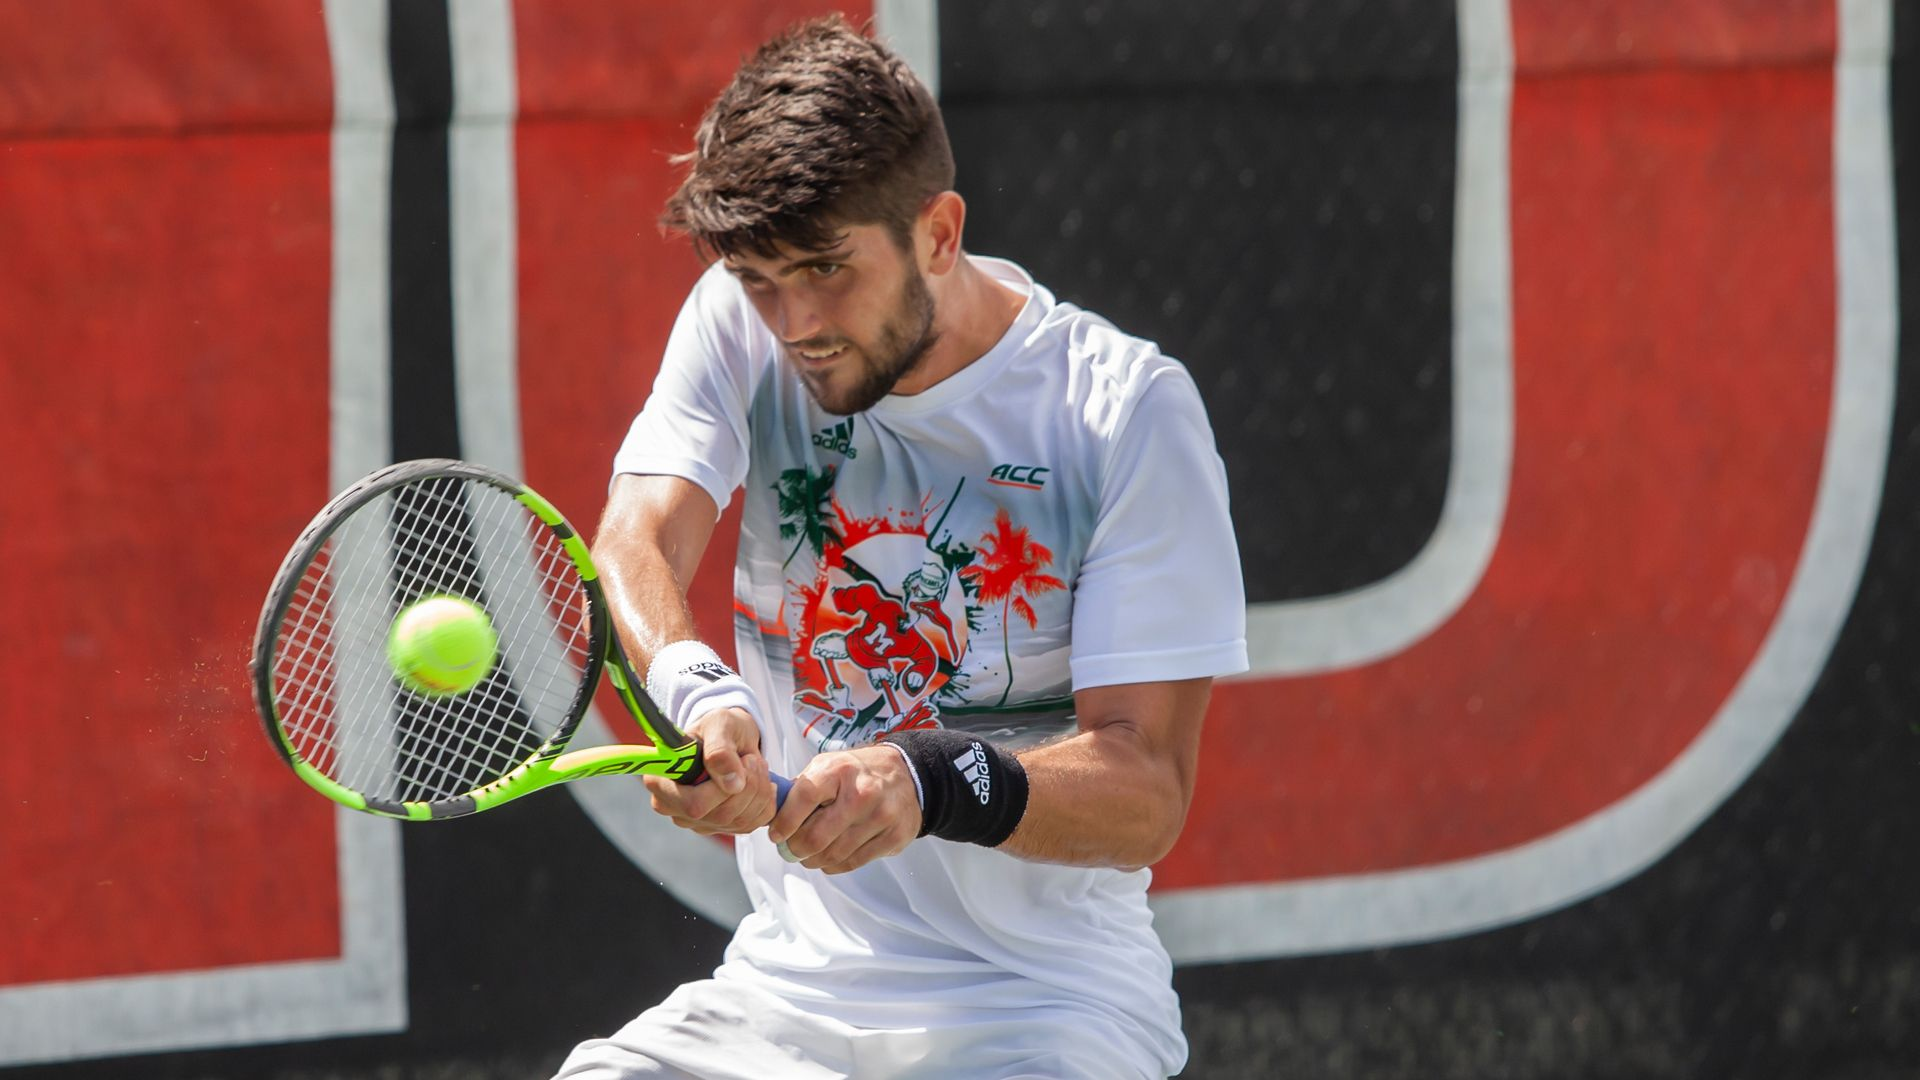 Men's Tennis Drops Match at NC State, 4-1